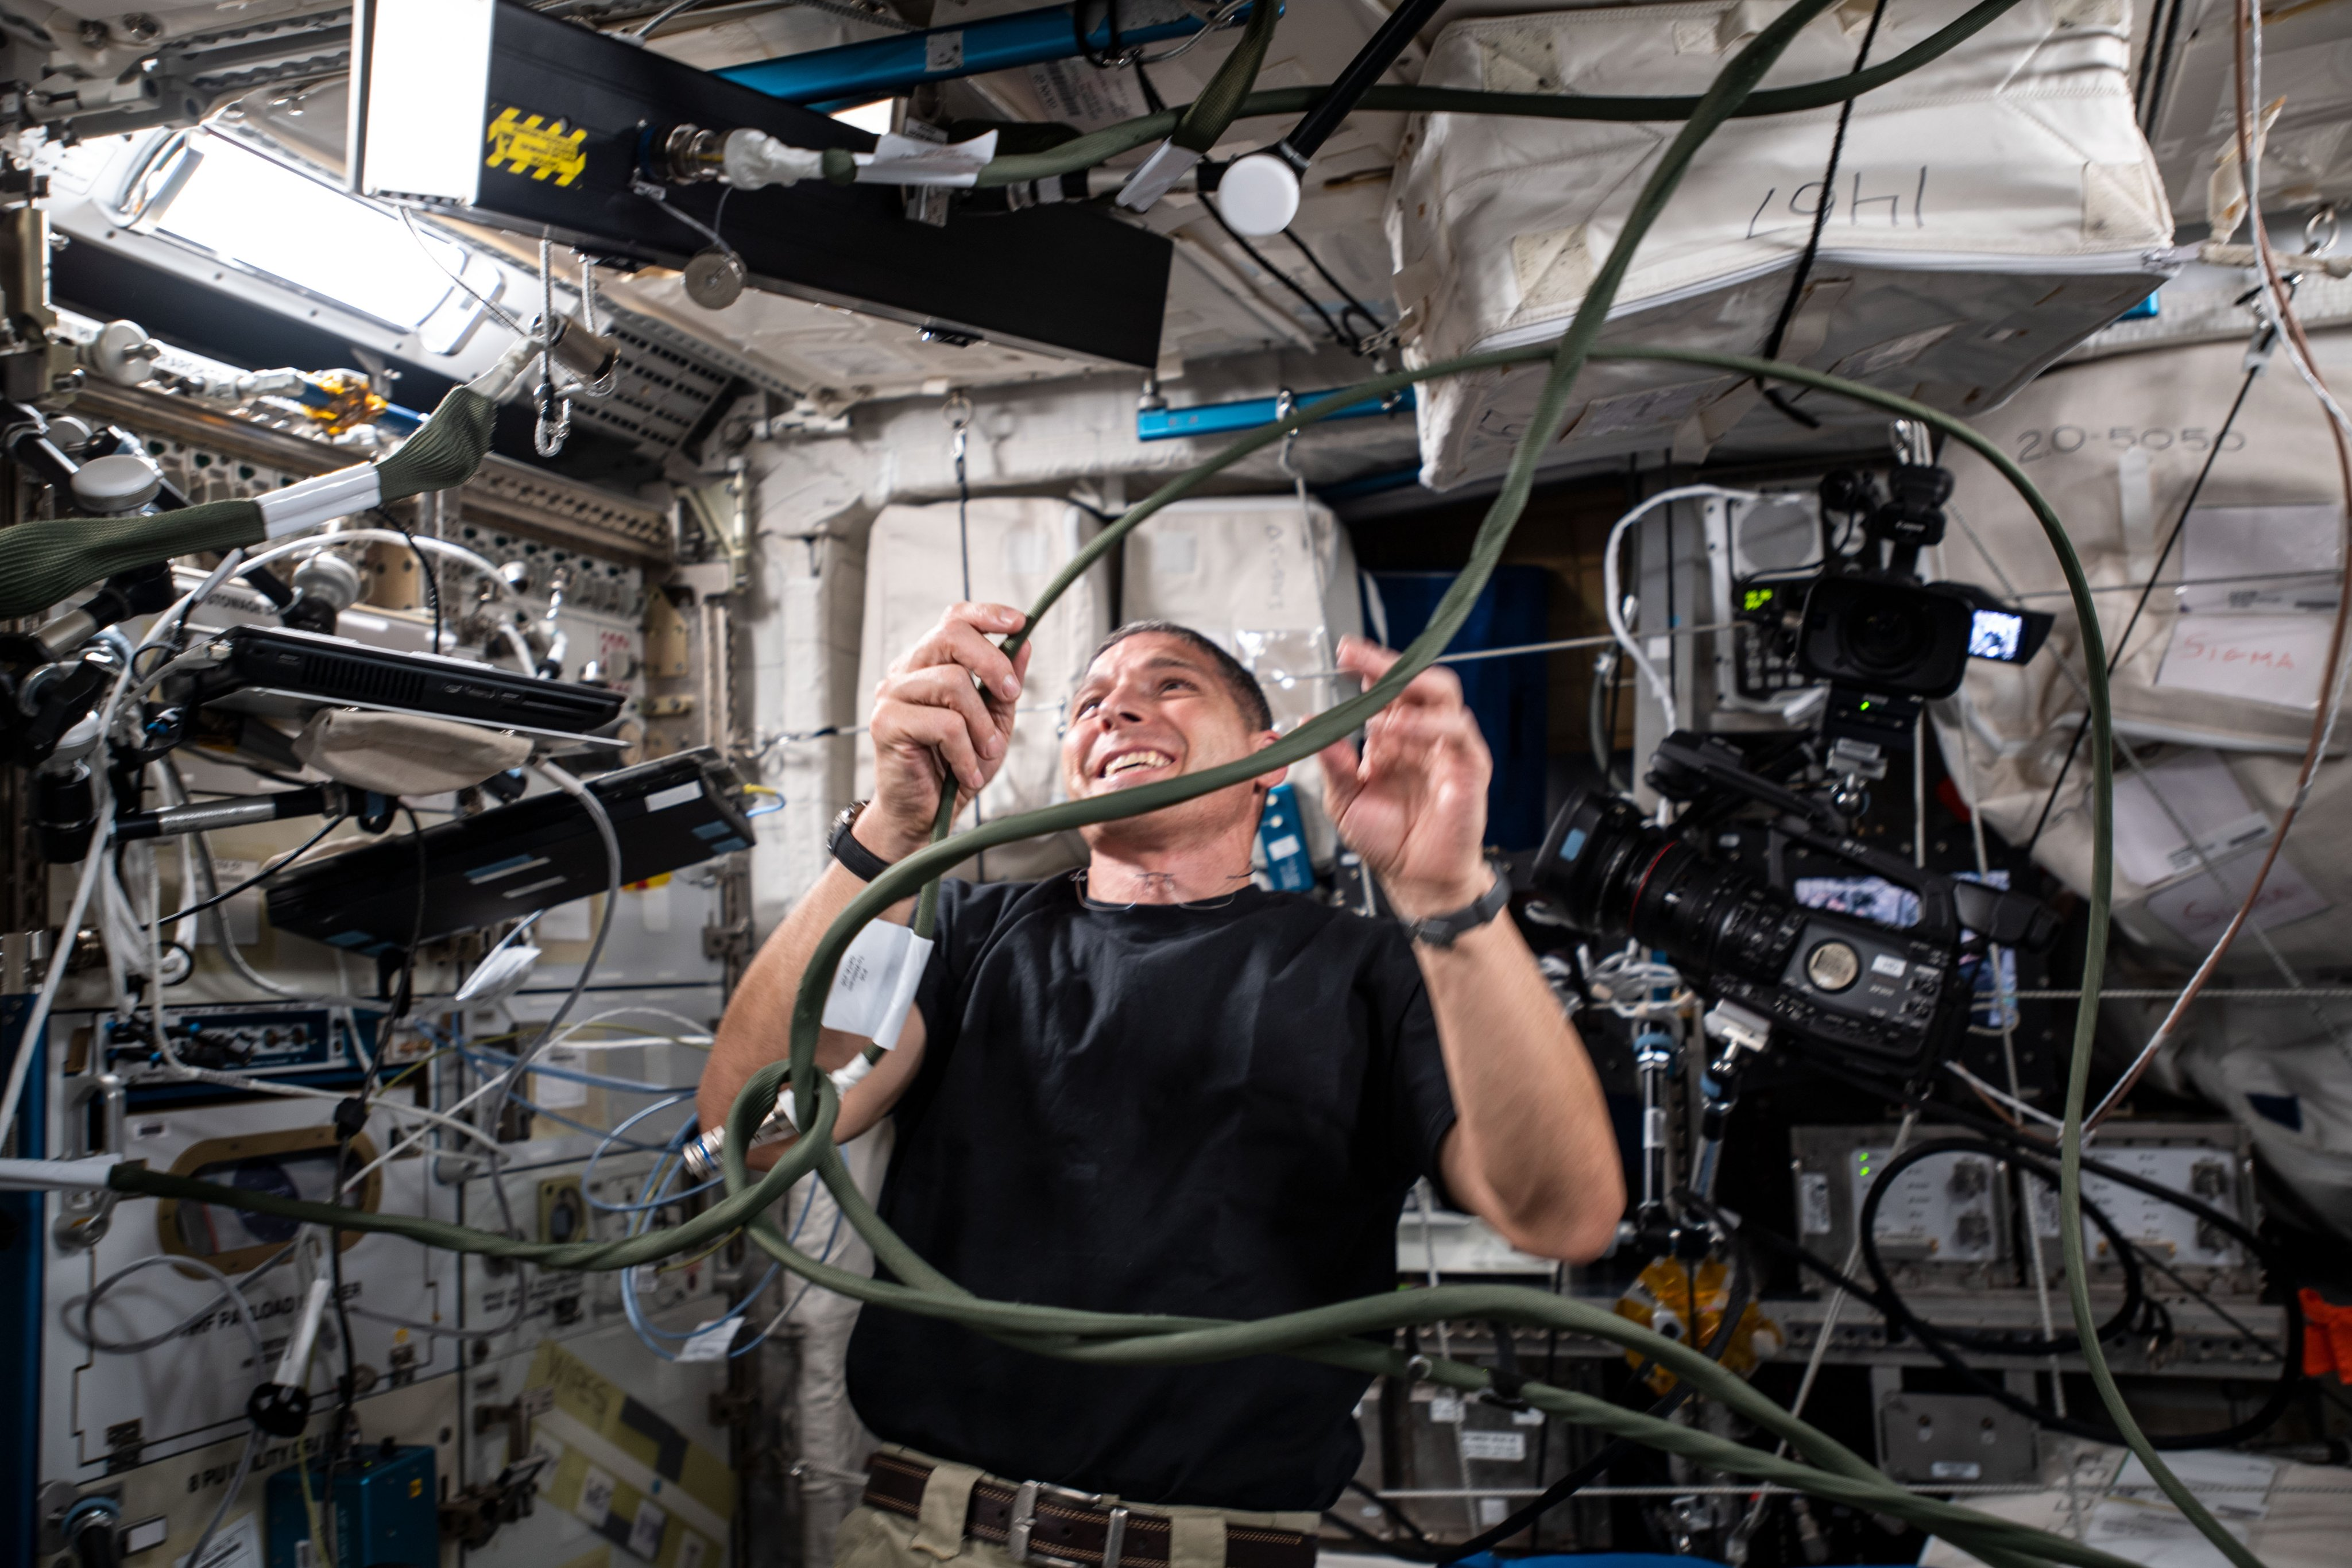 SpaceX Crew-1 Commander and Expedition 64 Flight Engineer Michael Hopkins of NASA sets up hardware for the Grip study that is researching how an astronaut's dexterous manipulation is affected by microgravity.